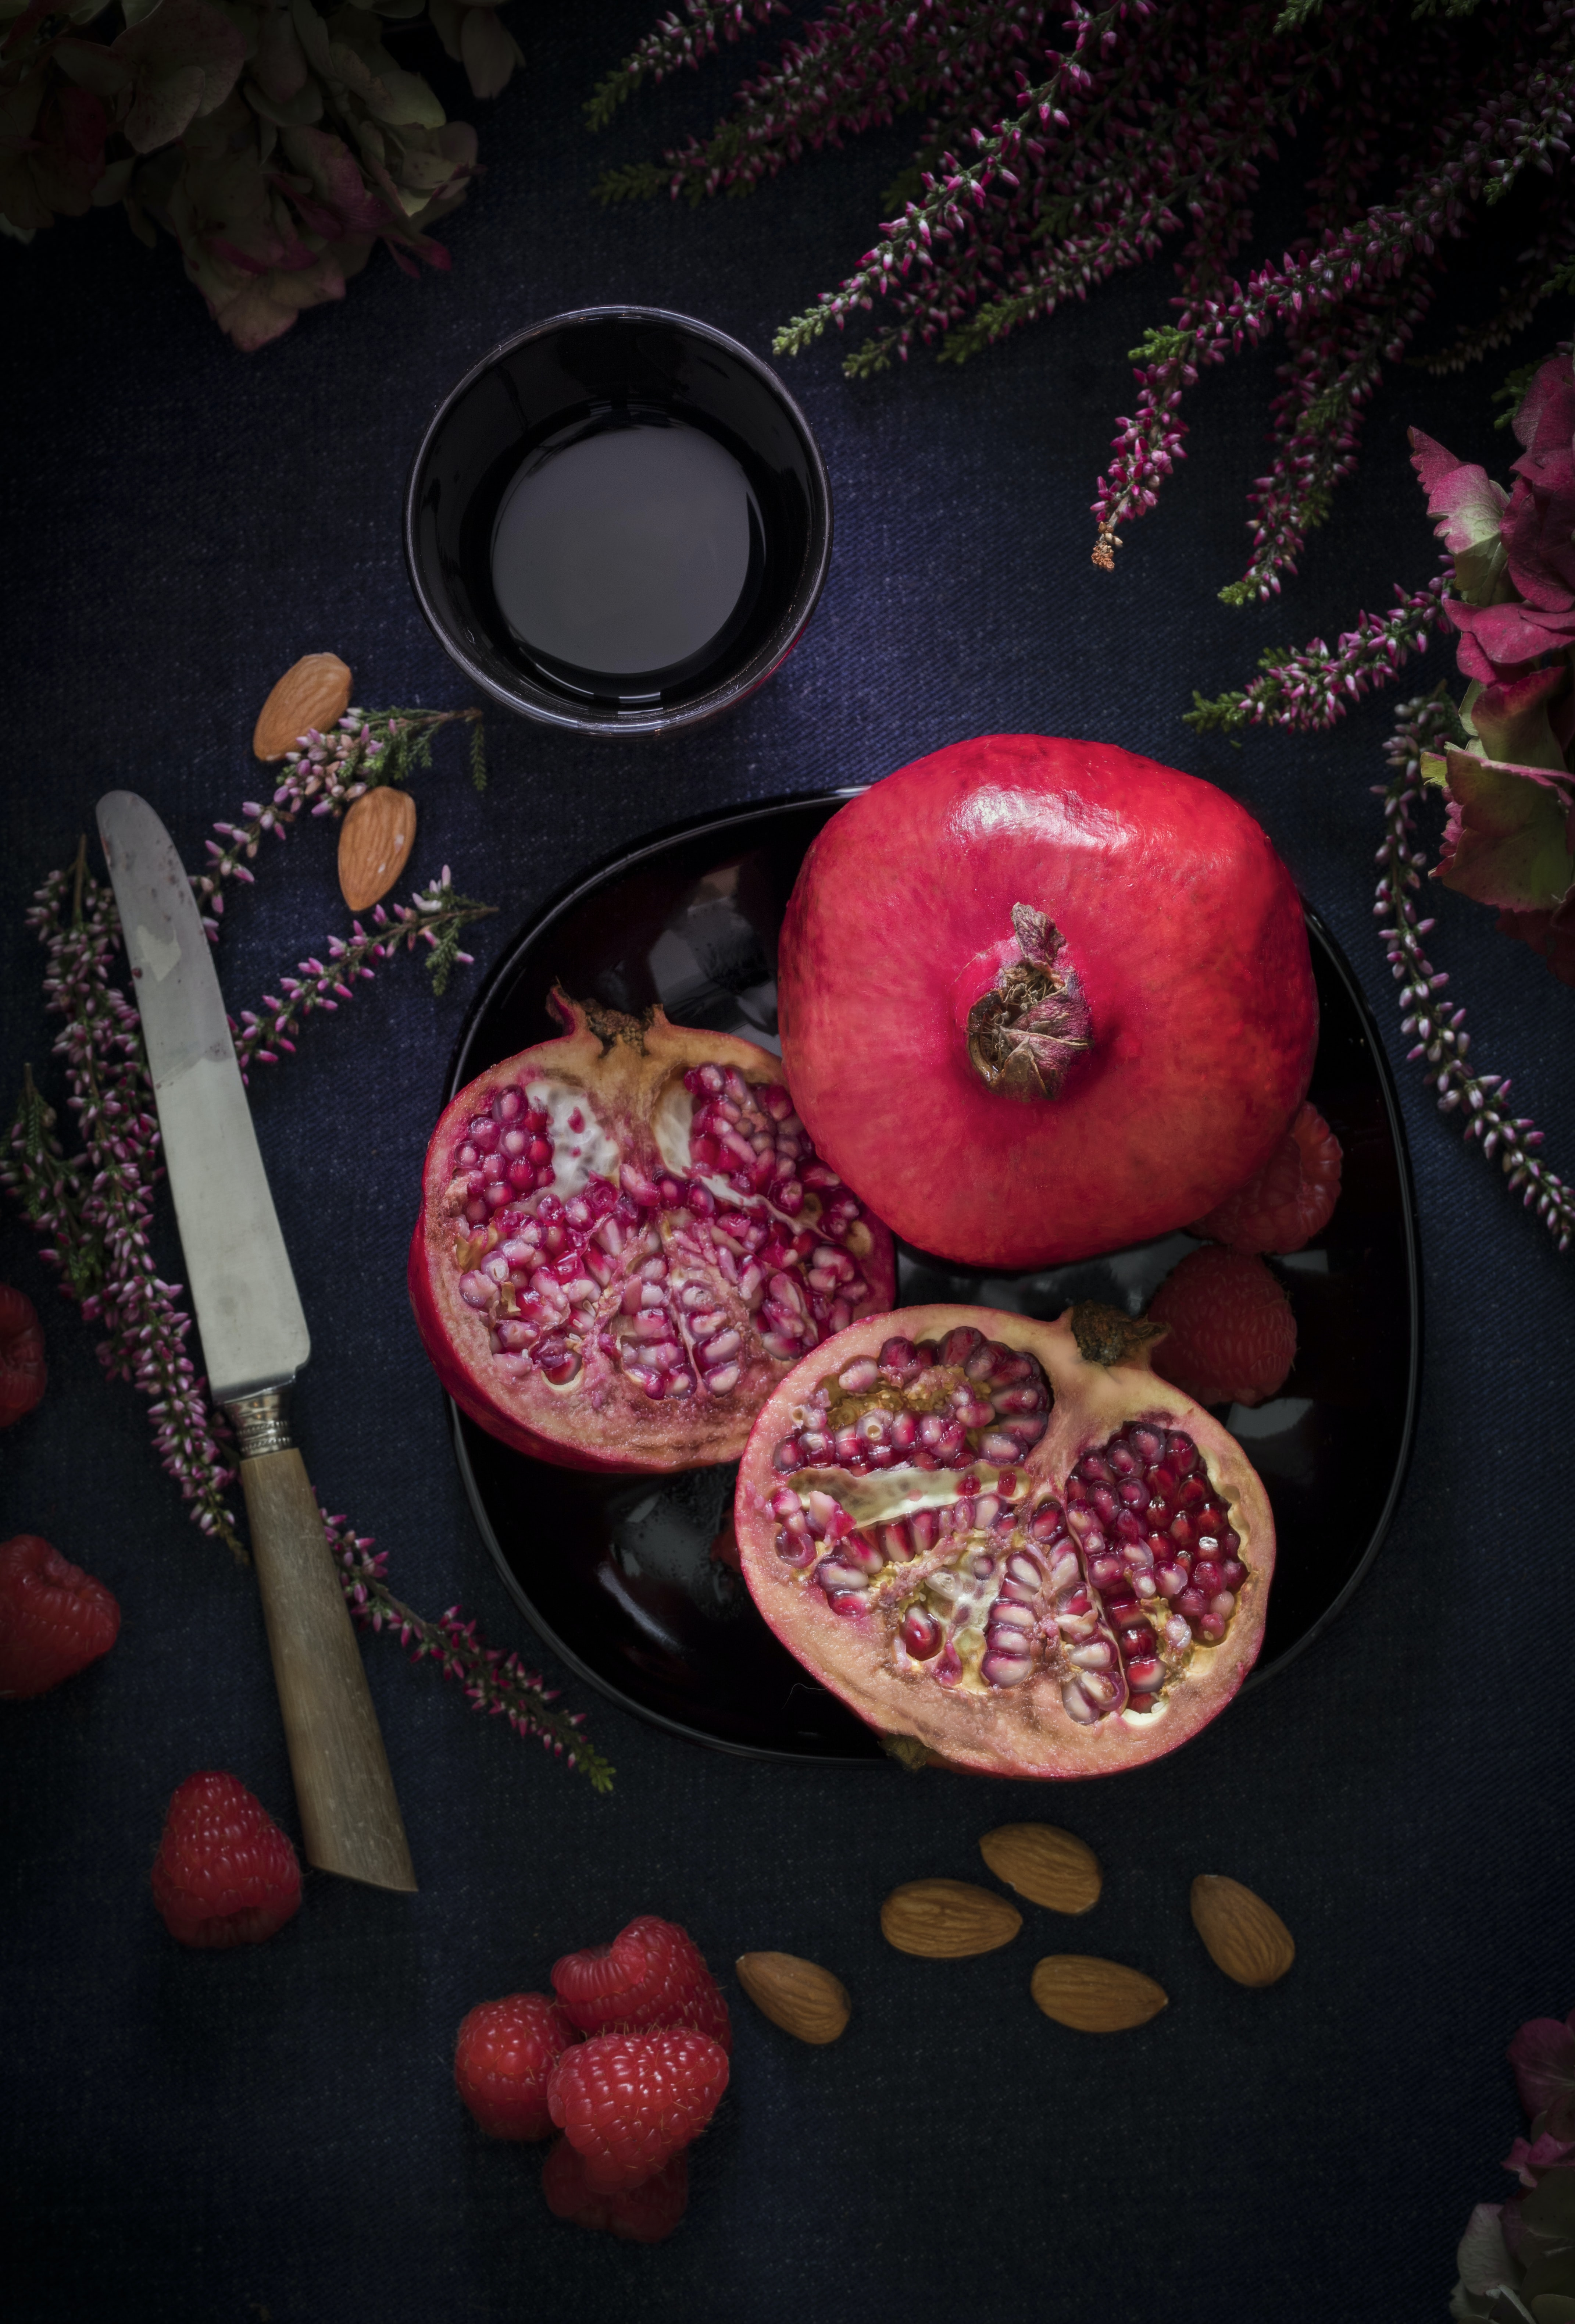 red fruit on black plate